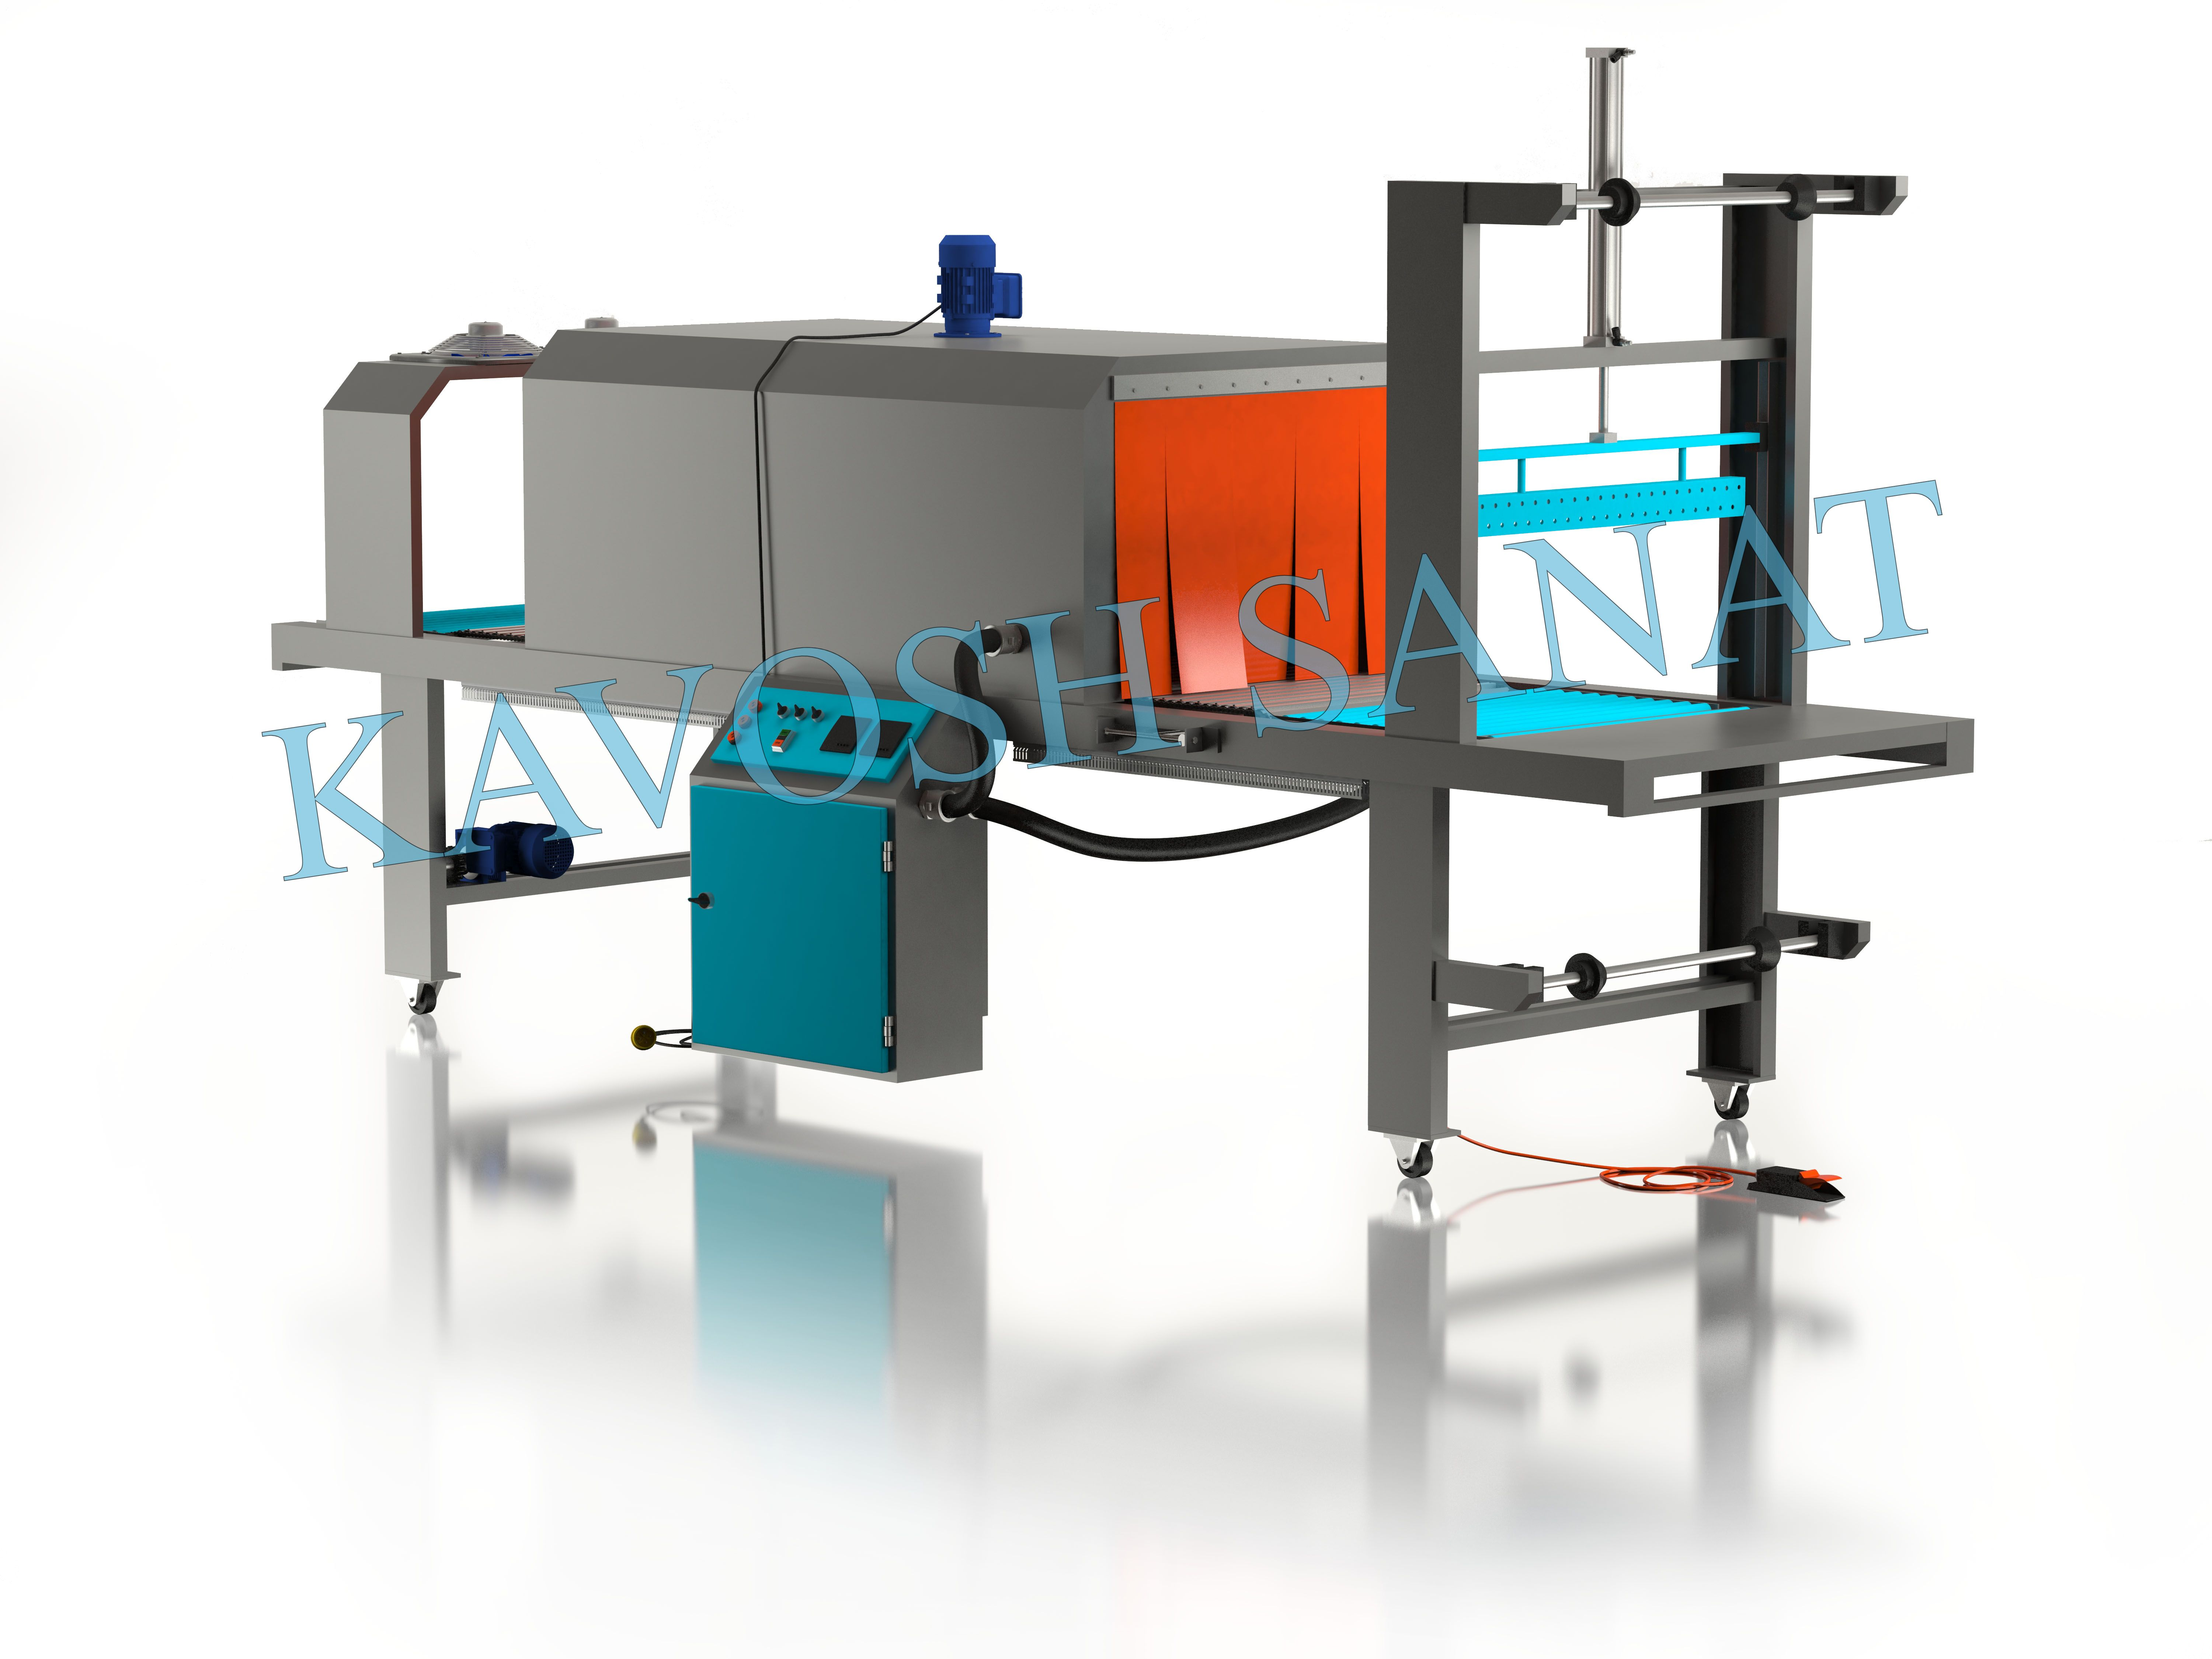 Kavosh Sanat - Shrink Pack Machine